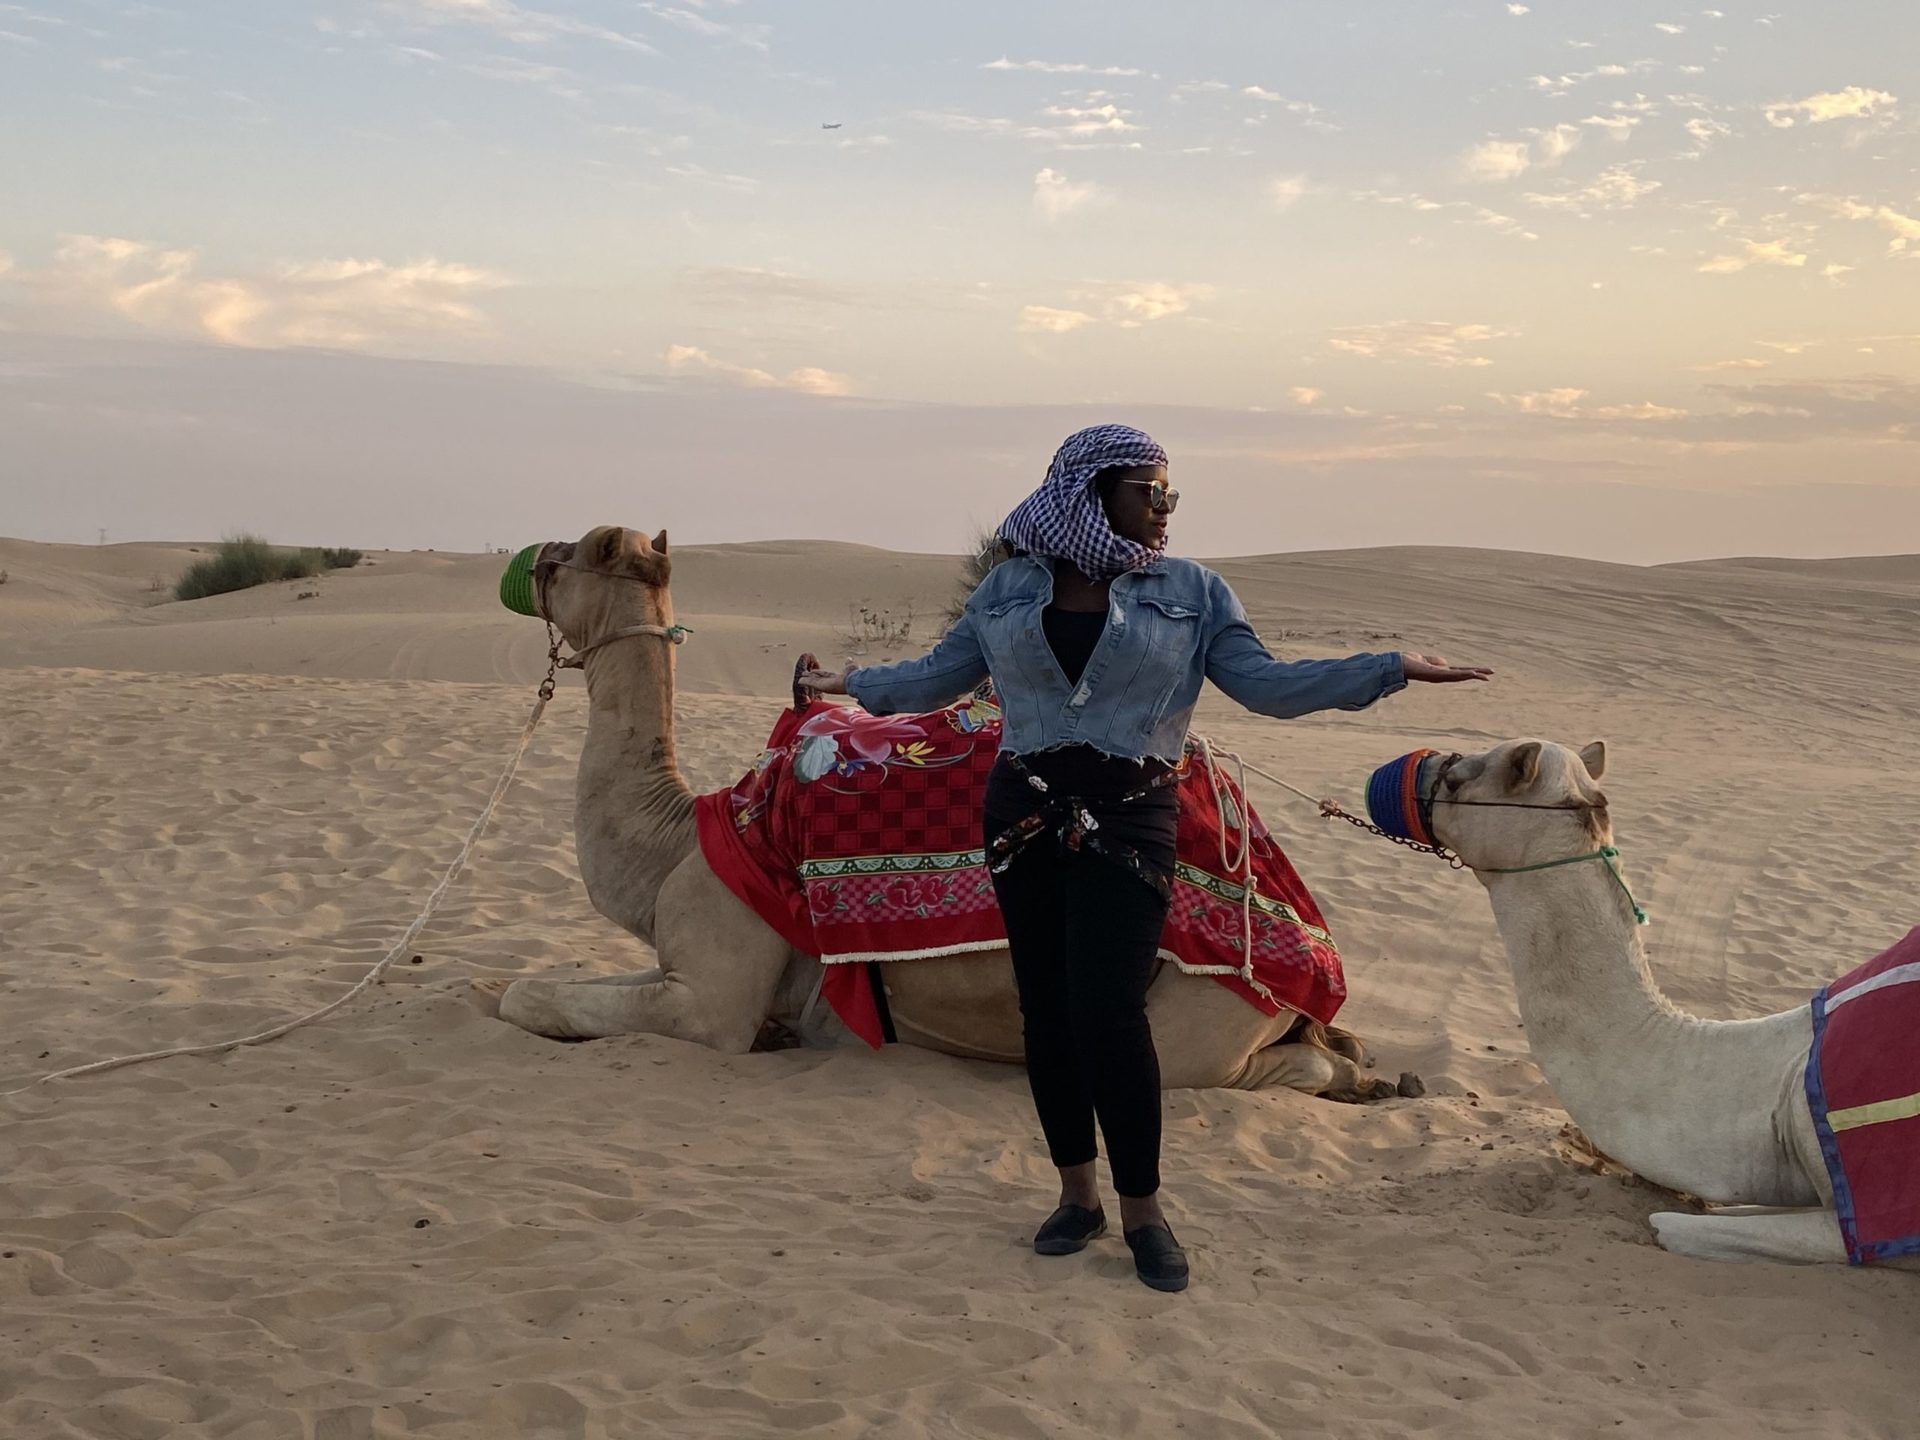 Black woman standing in front of two camels laying in the desert